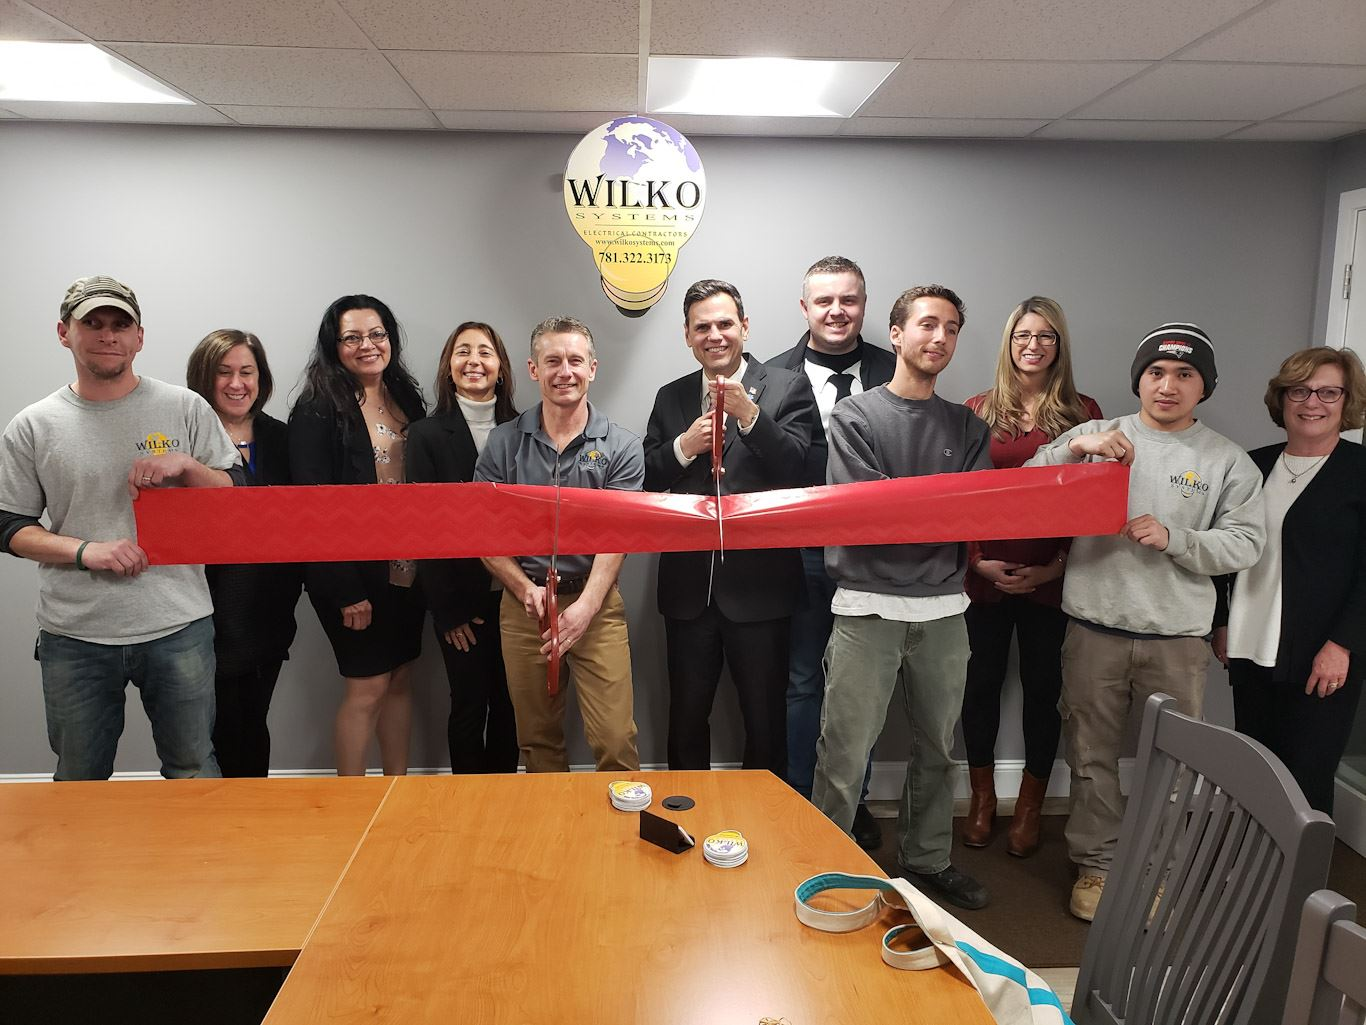 Wilko employees and Chamber of Commerce members with (center, holding scissors) Owner Bill Kotowski